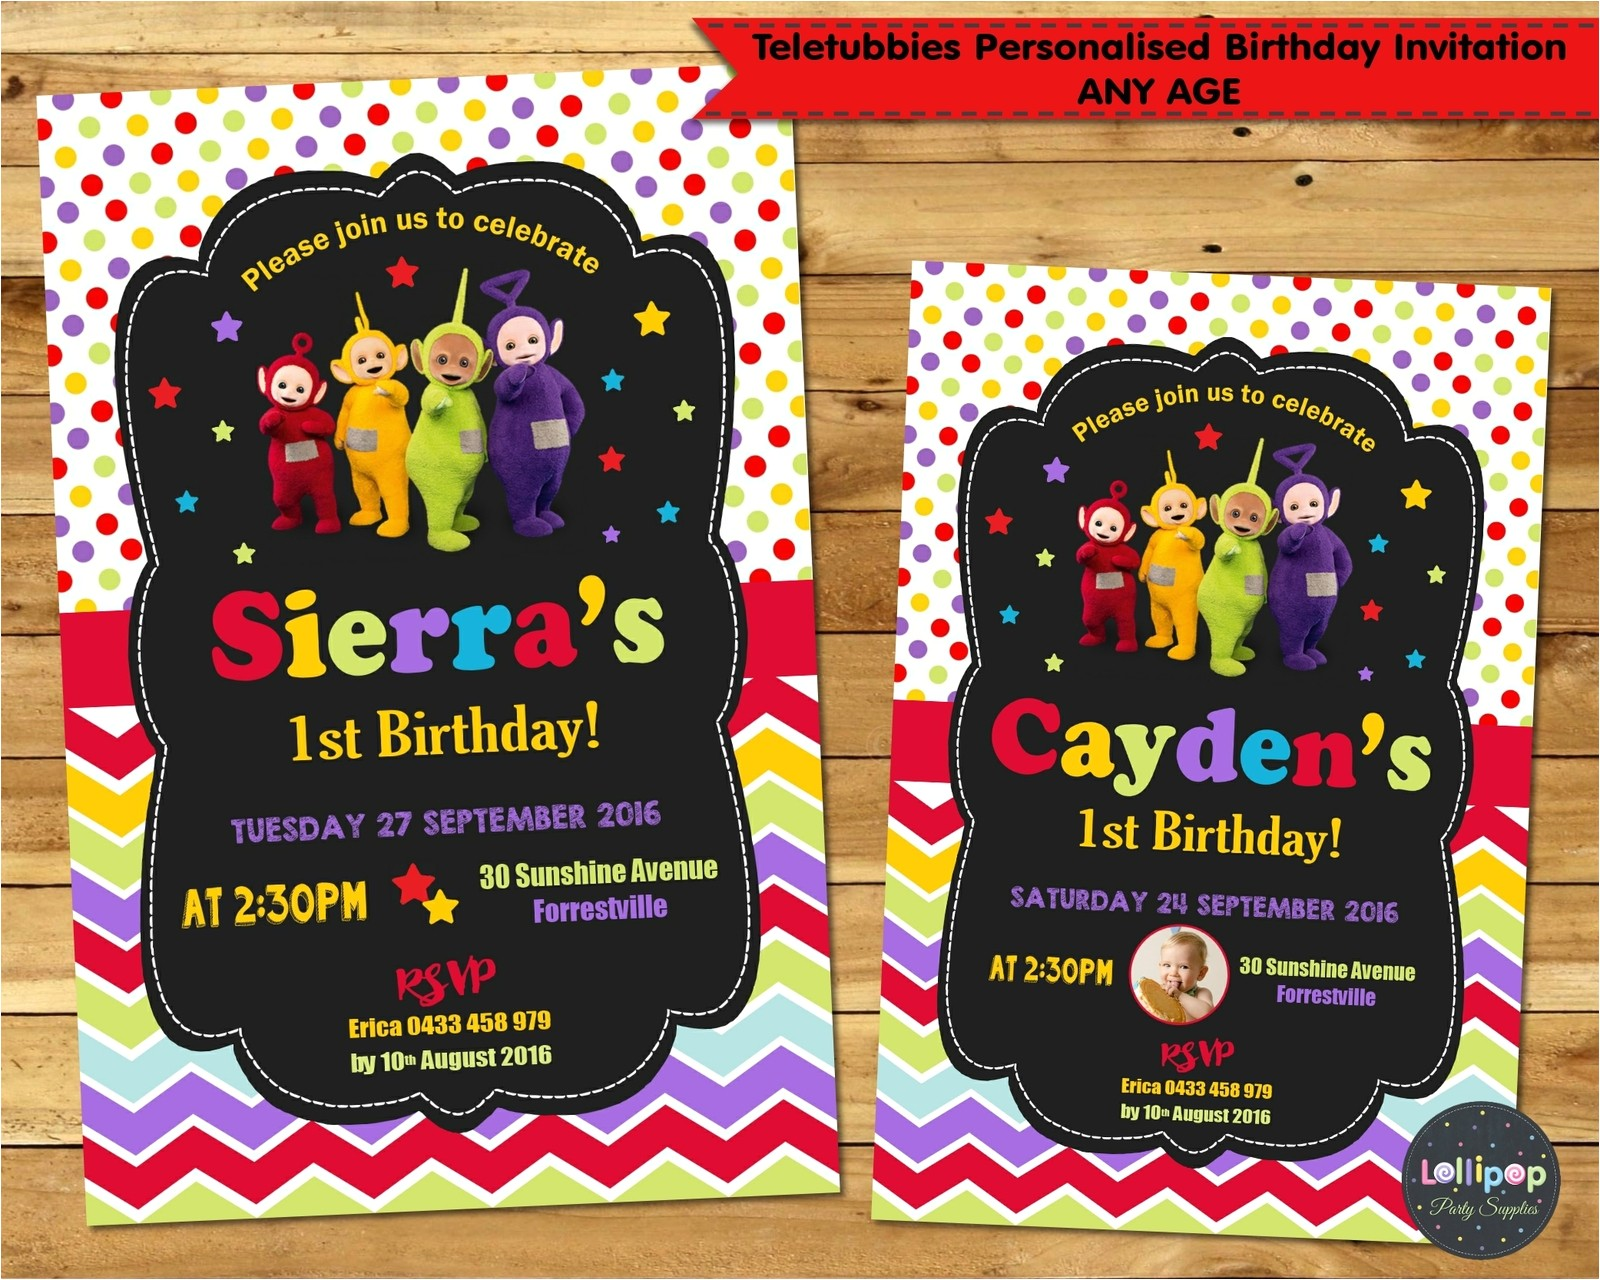 teletubbies personalised invitation